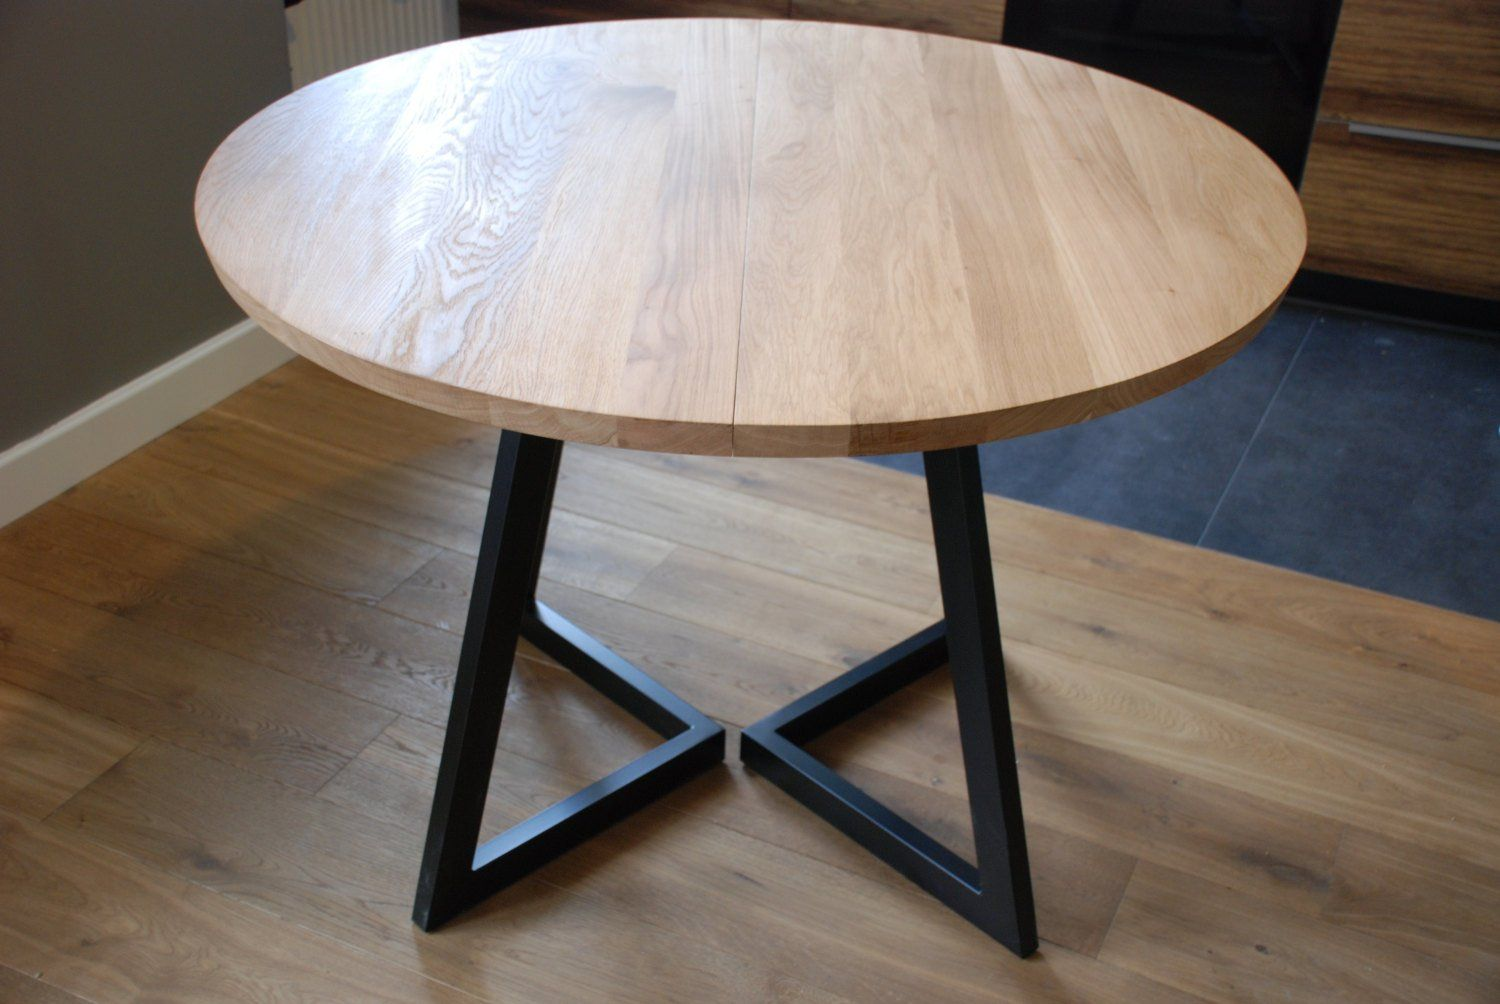 Table Ronde Moderne extendable round table modern design steel and timber | huis